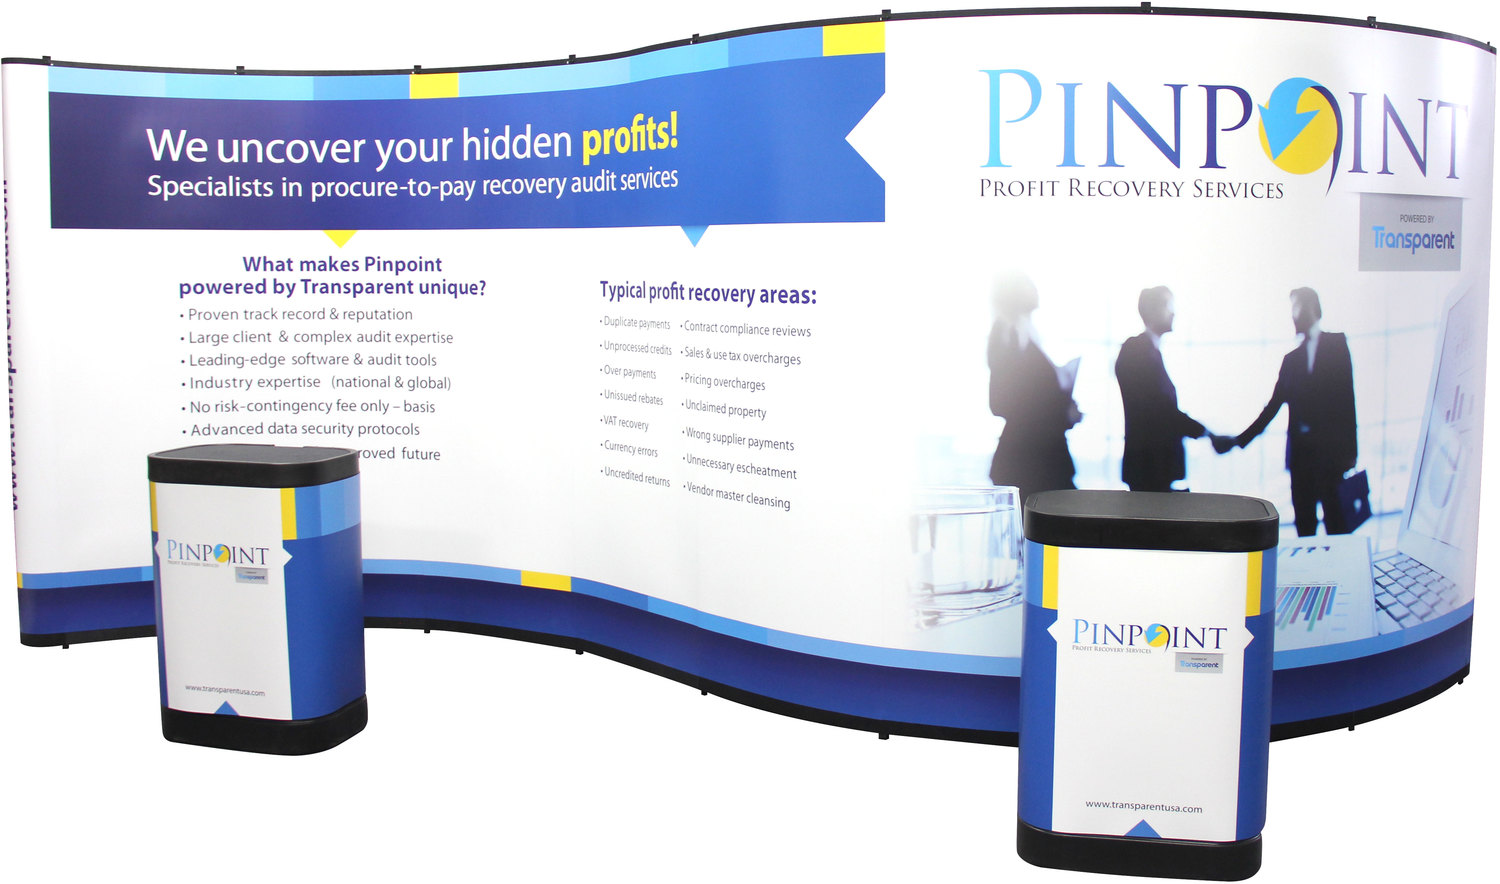 20ft-trade-show-display-popup-pinpoint.jpg